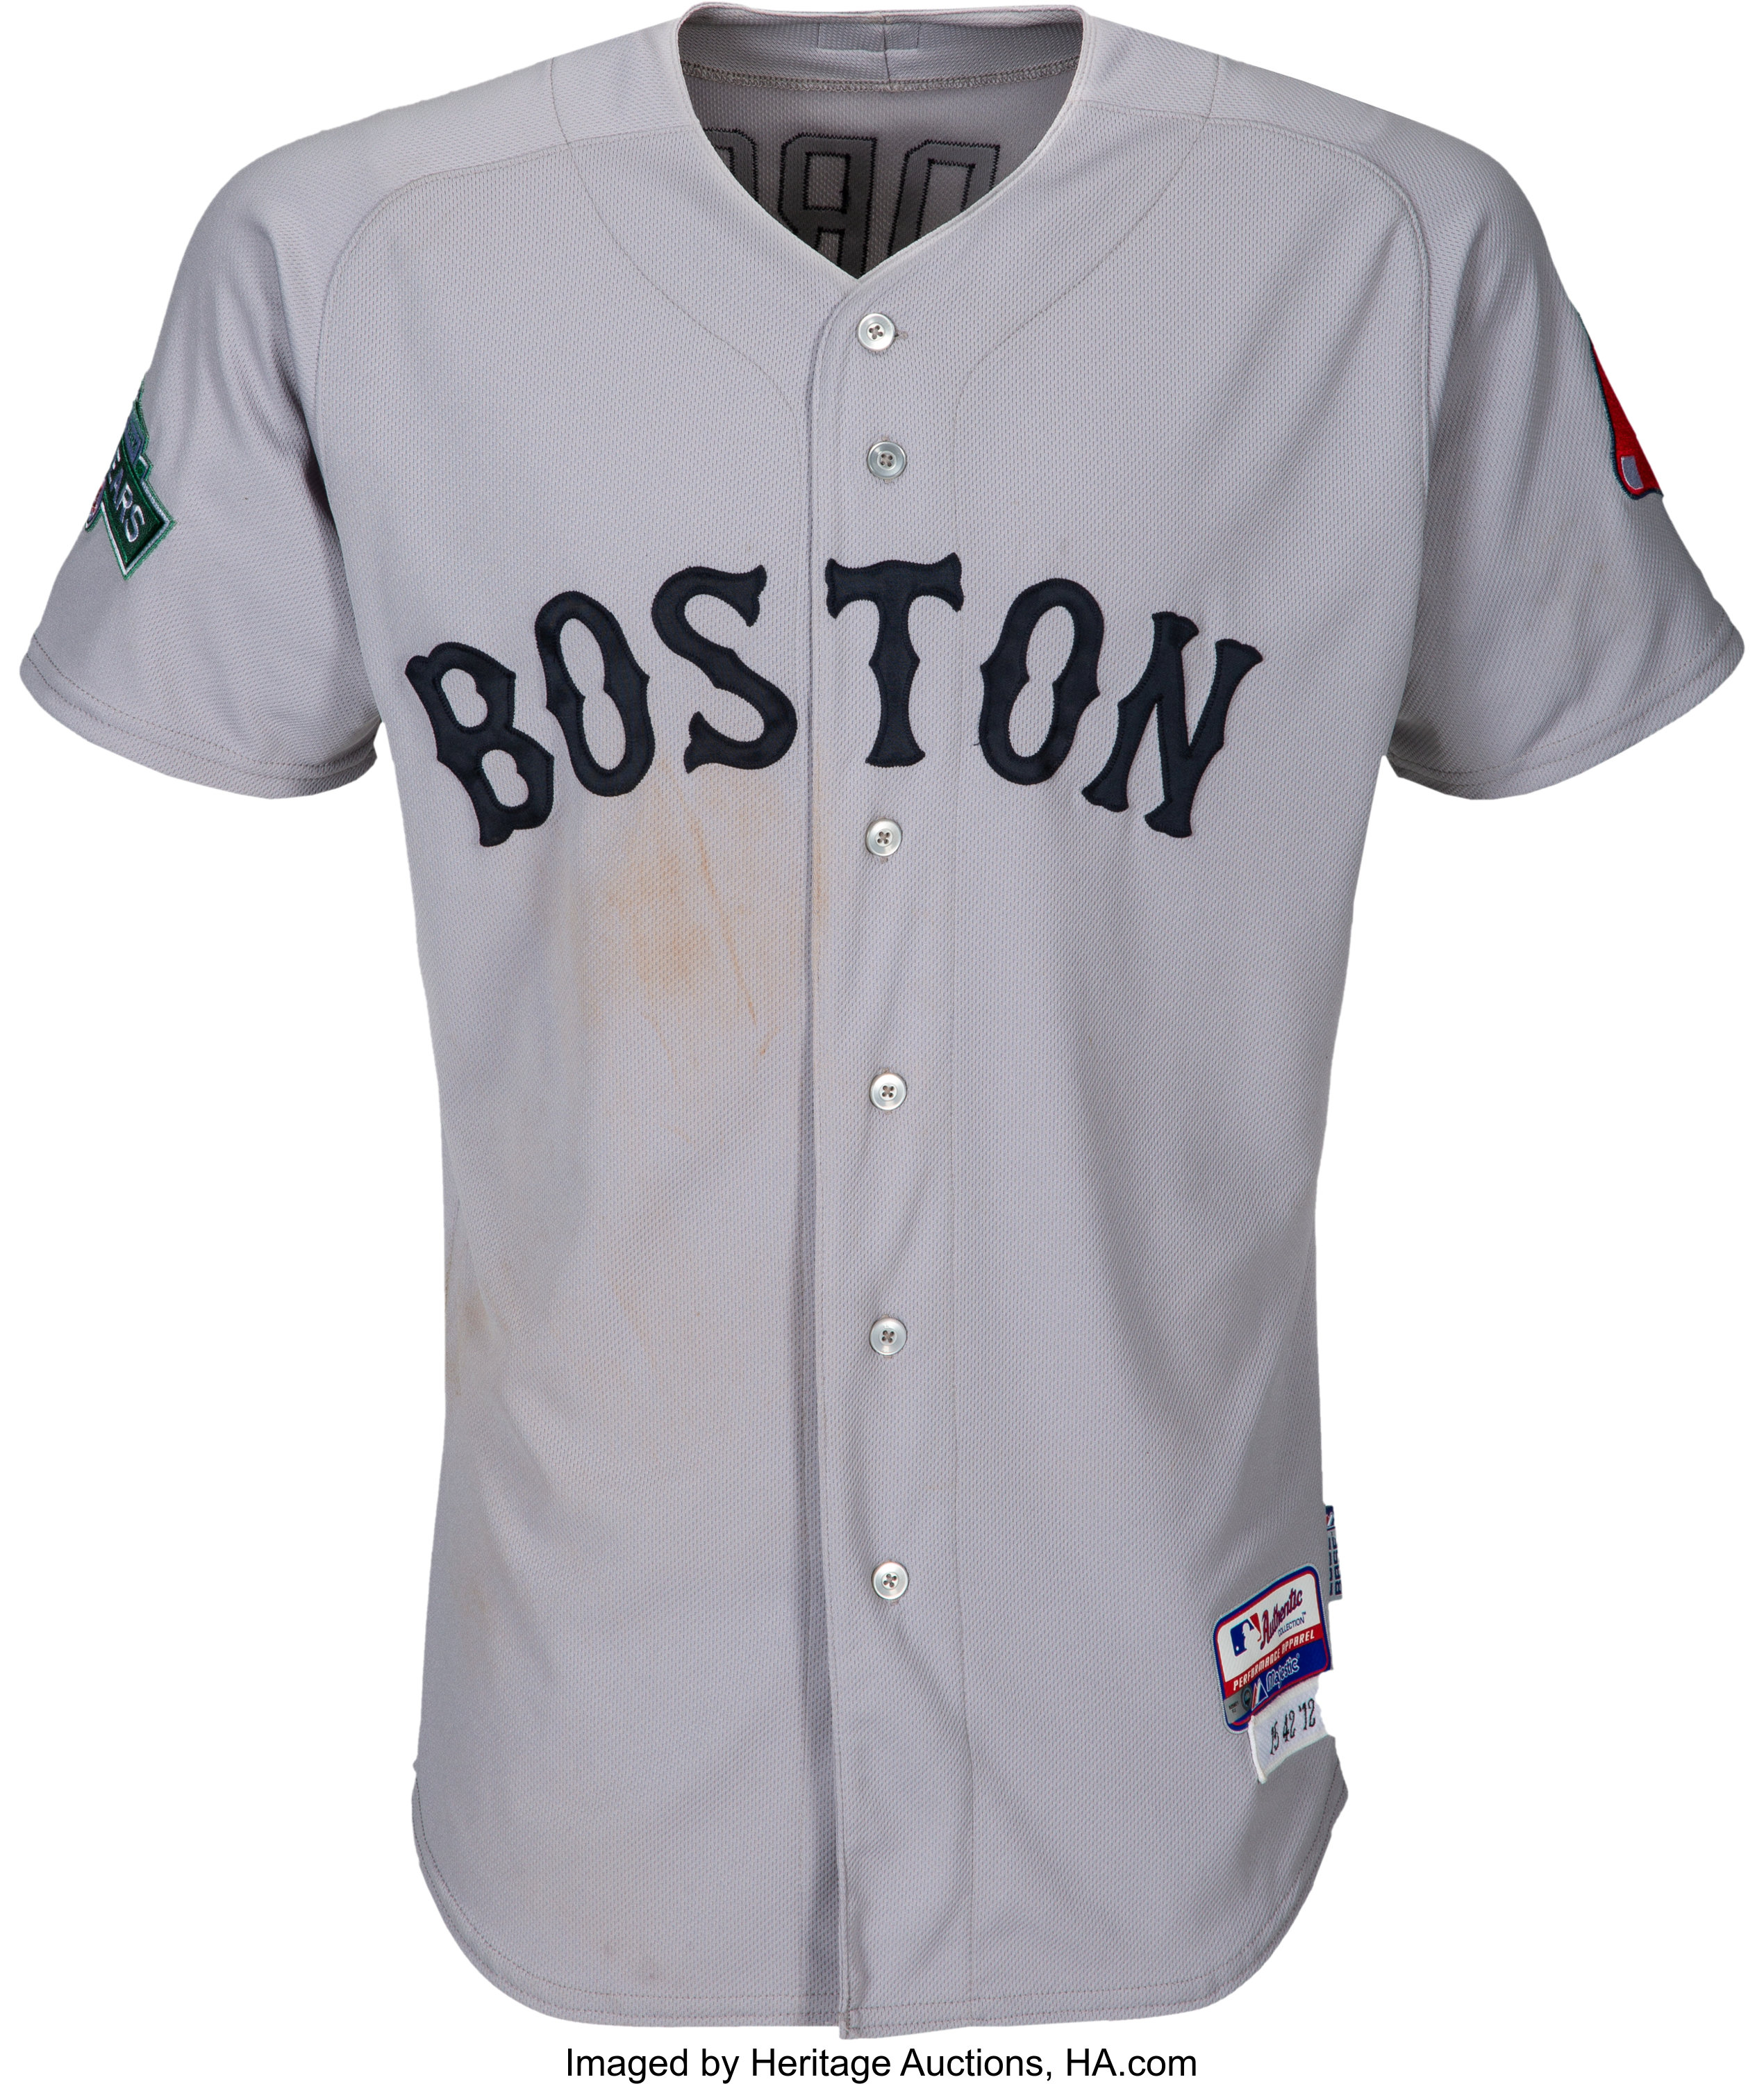 online store 4a6bb 2eed9 2012 Dustin Pedroia Game Worn Boston Red Sox Jersey from ...